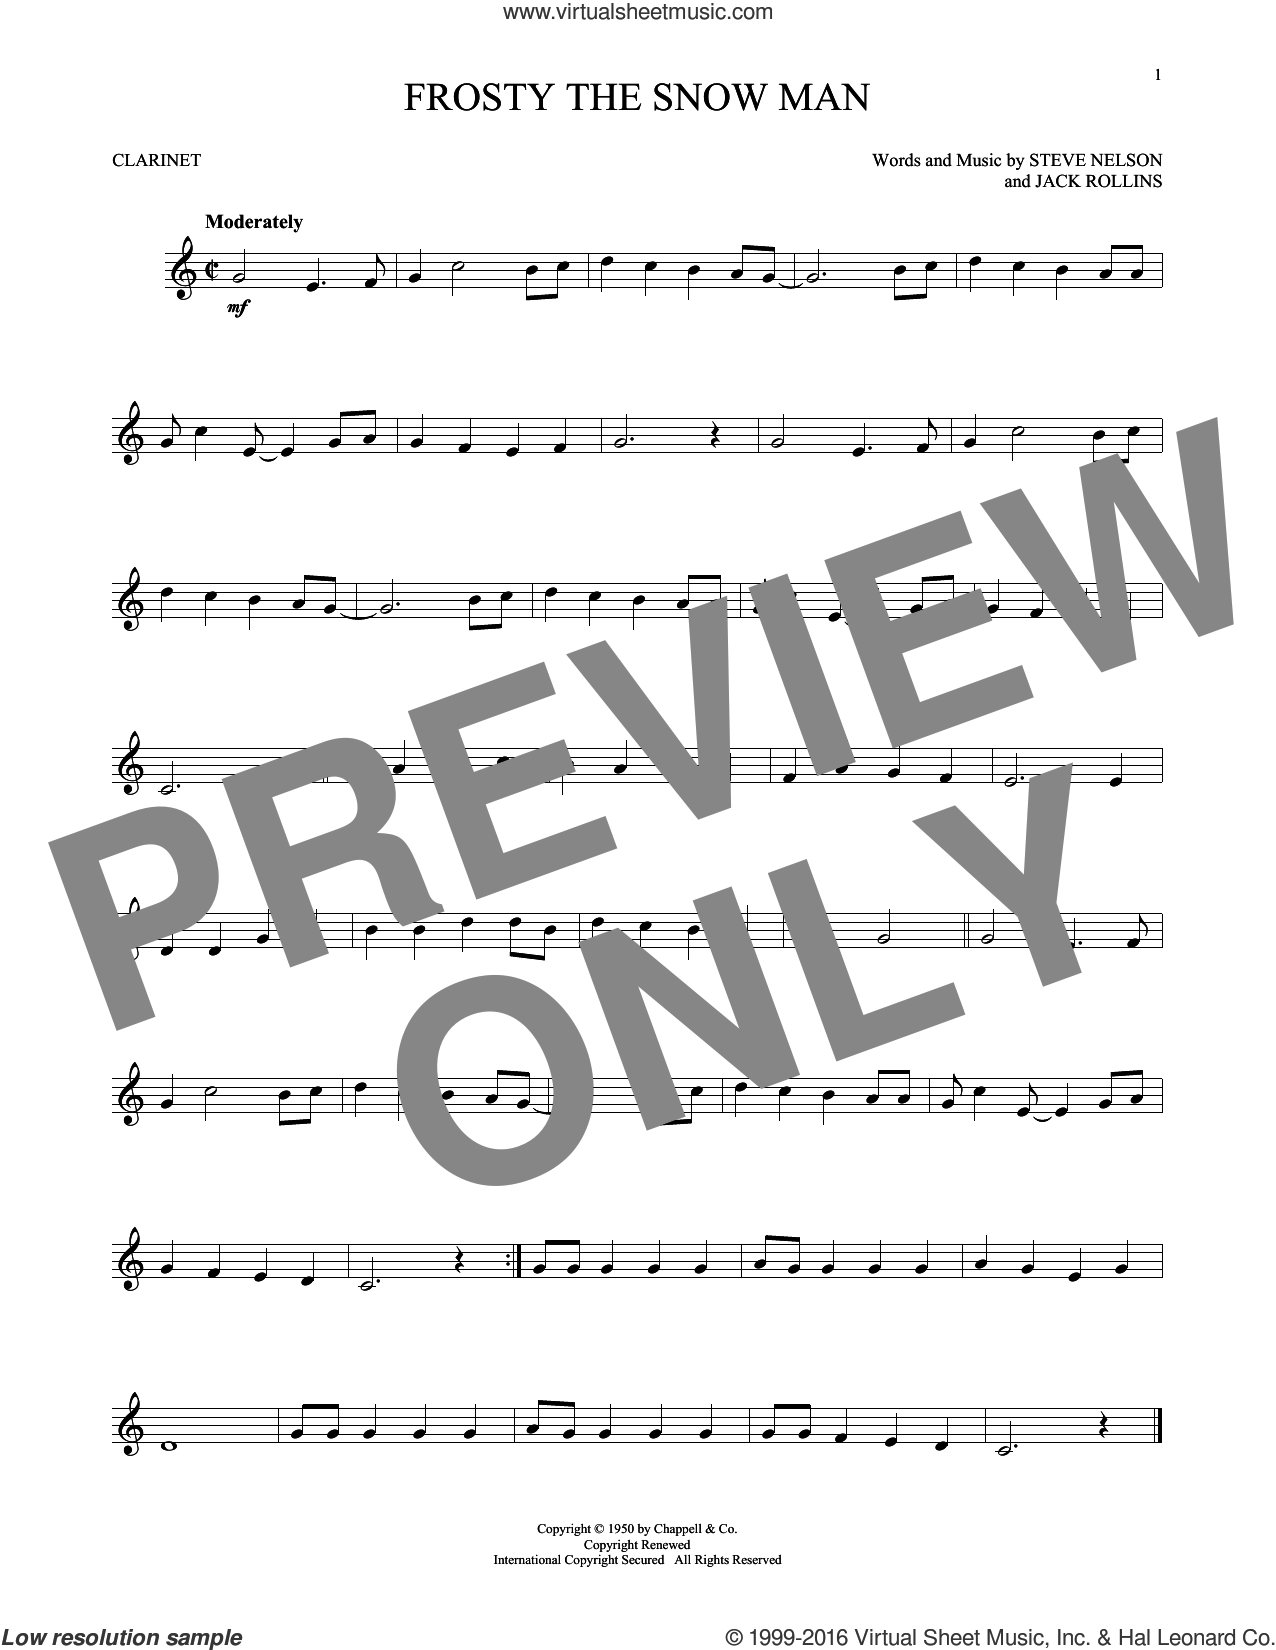 Frosty The Snow Man sheet music for clarinet solo by Steve Nelson and Jack Rollins. Score Image Preview.